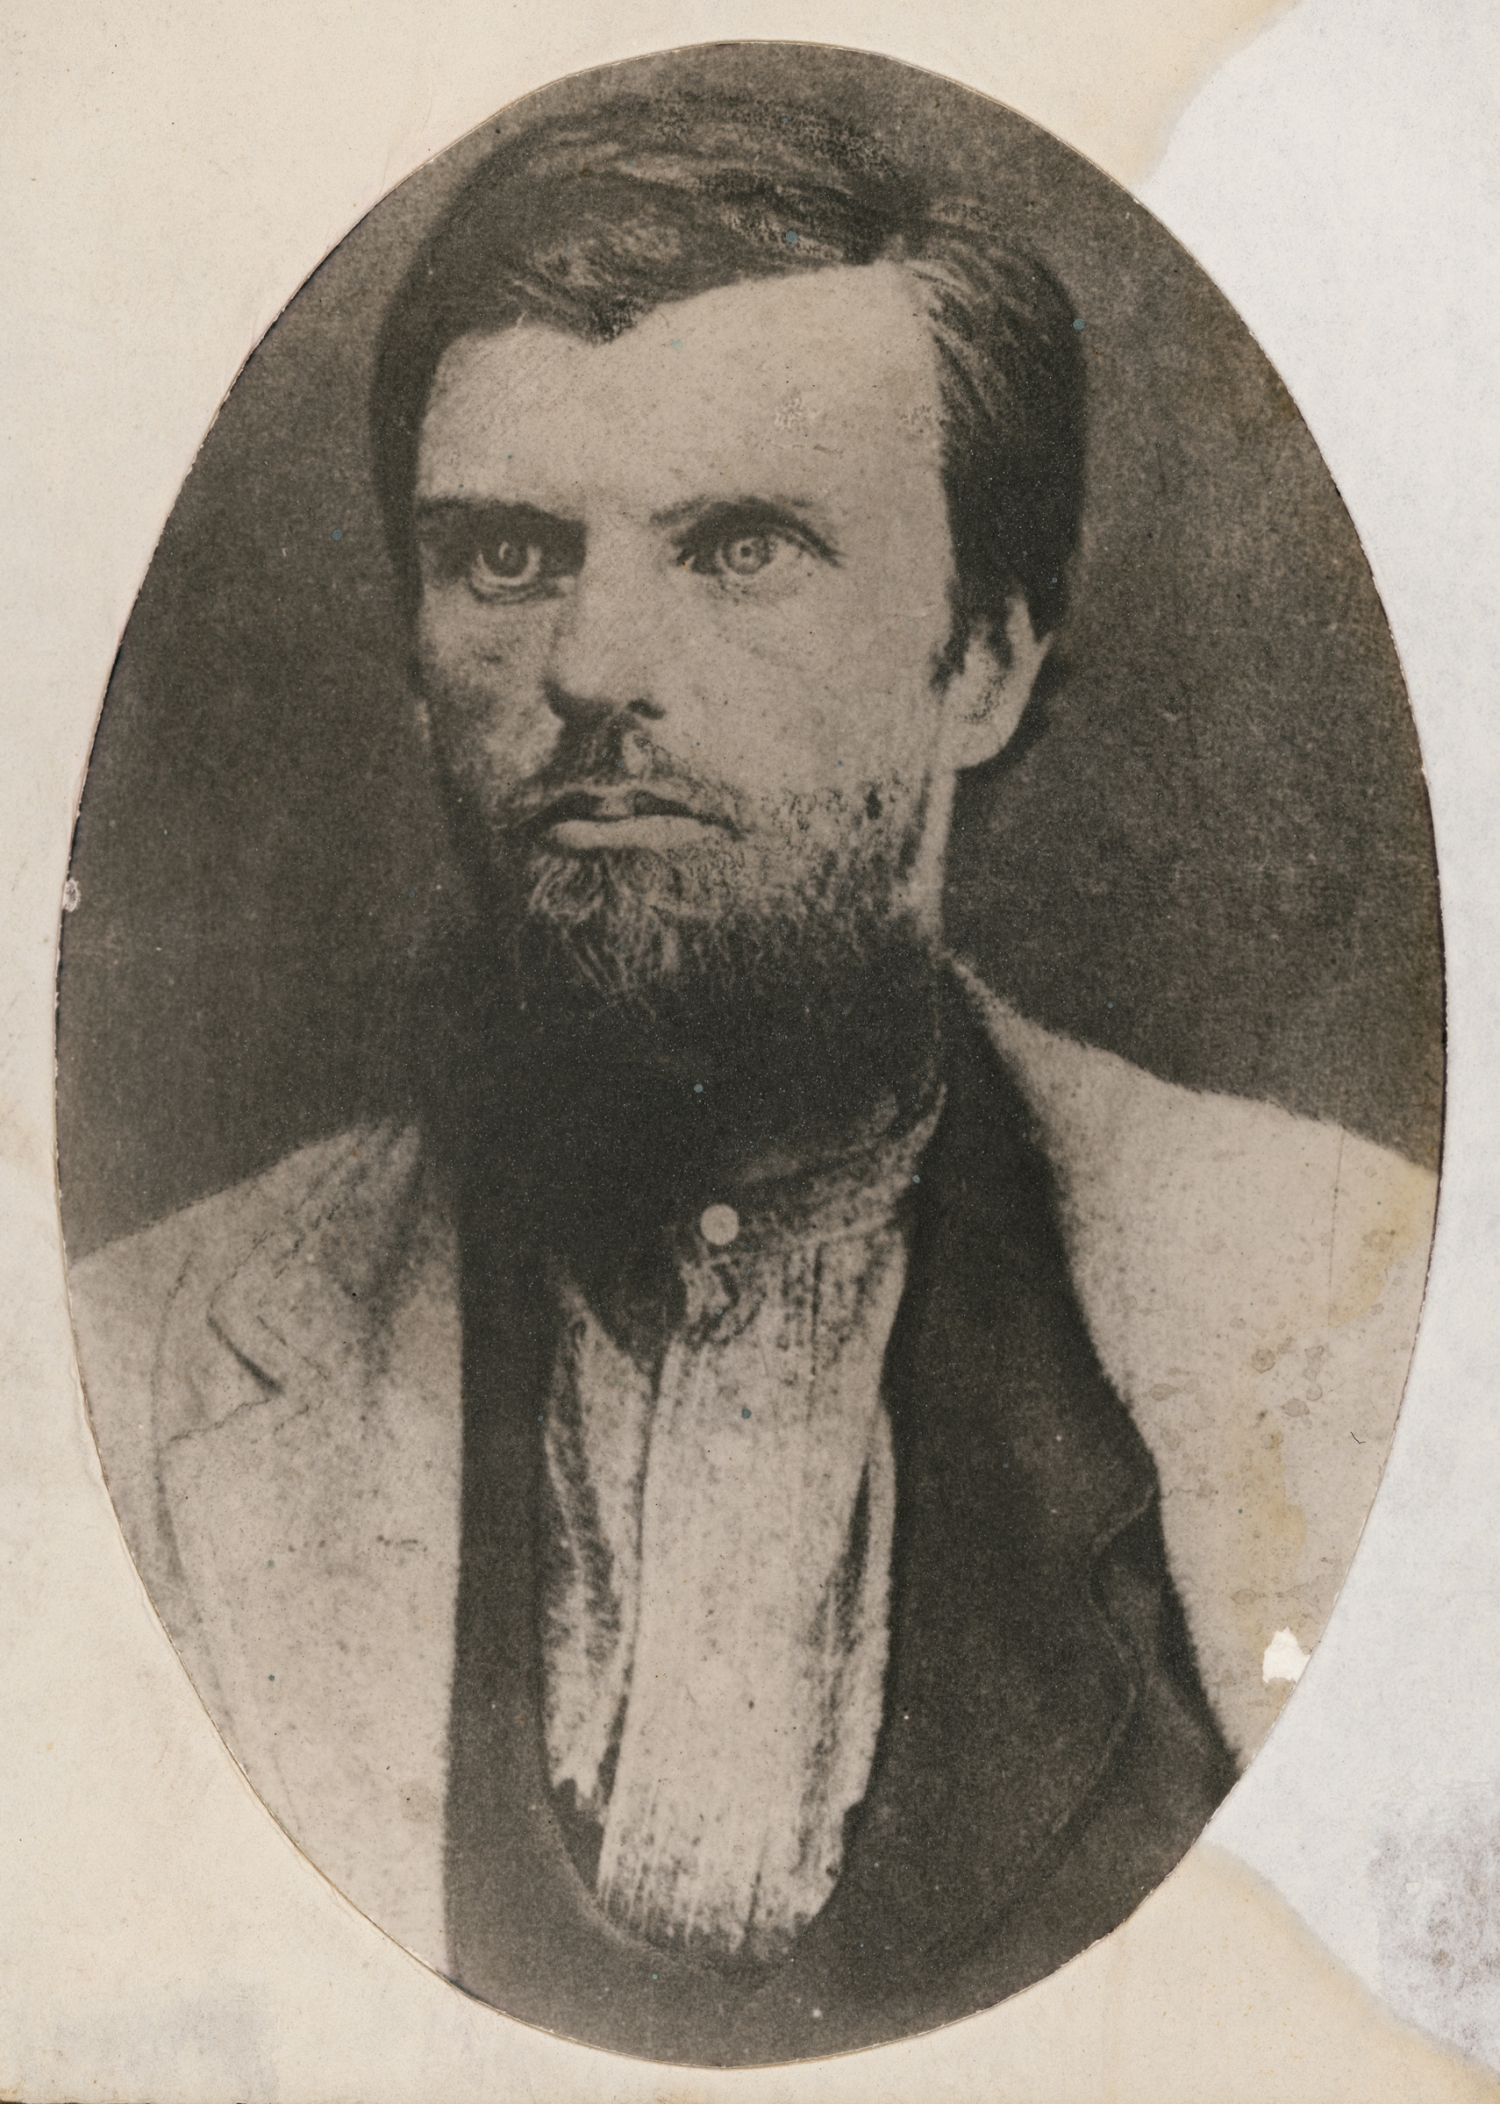 Portriat of man with sparse but long beard.